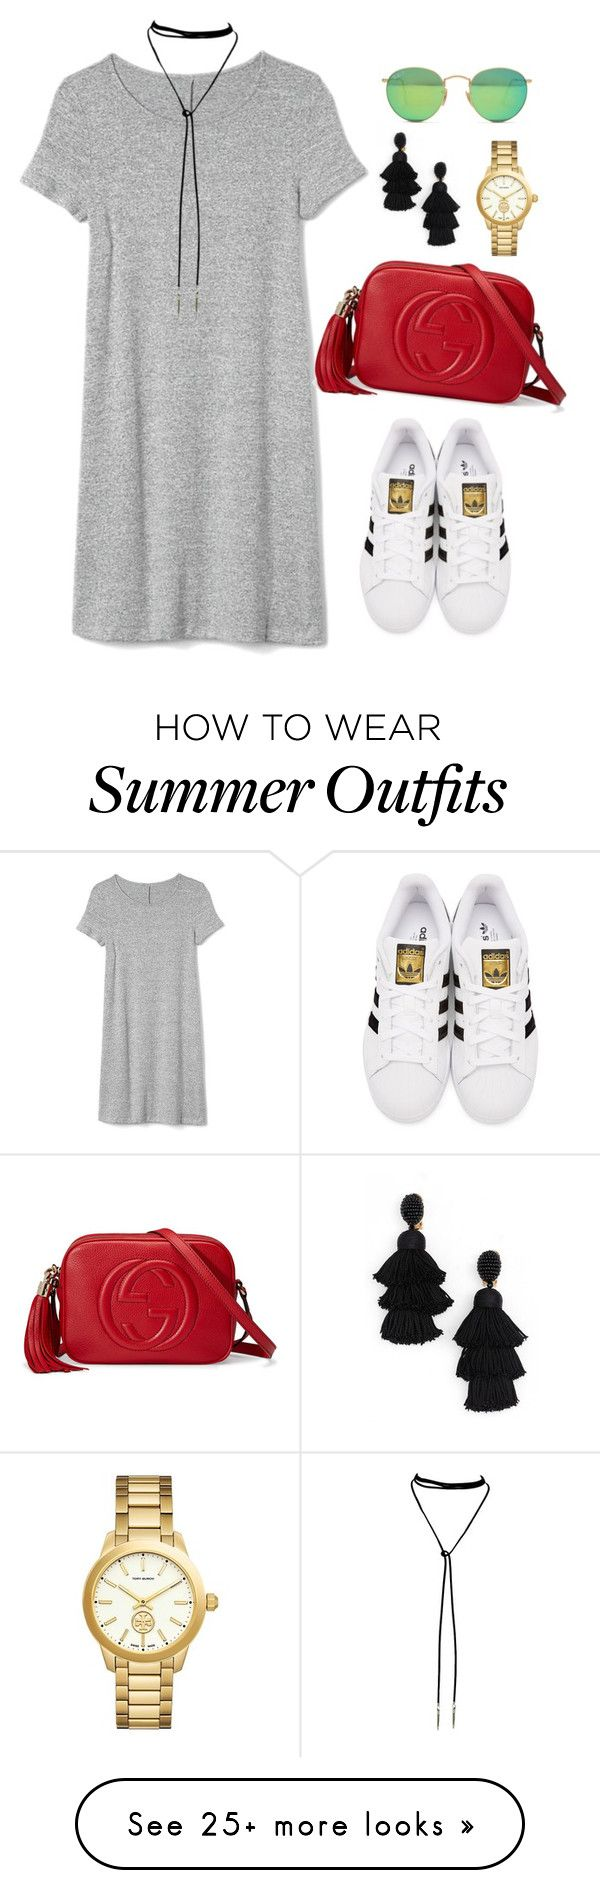 """Outfit 485"" by caa123 on Polyvore featuring Gap, Gucci, adidas Originals, Tory Burch, Oscar de la Renta and Ray-Ban"